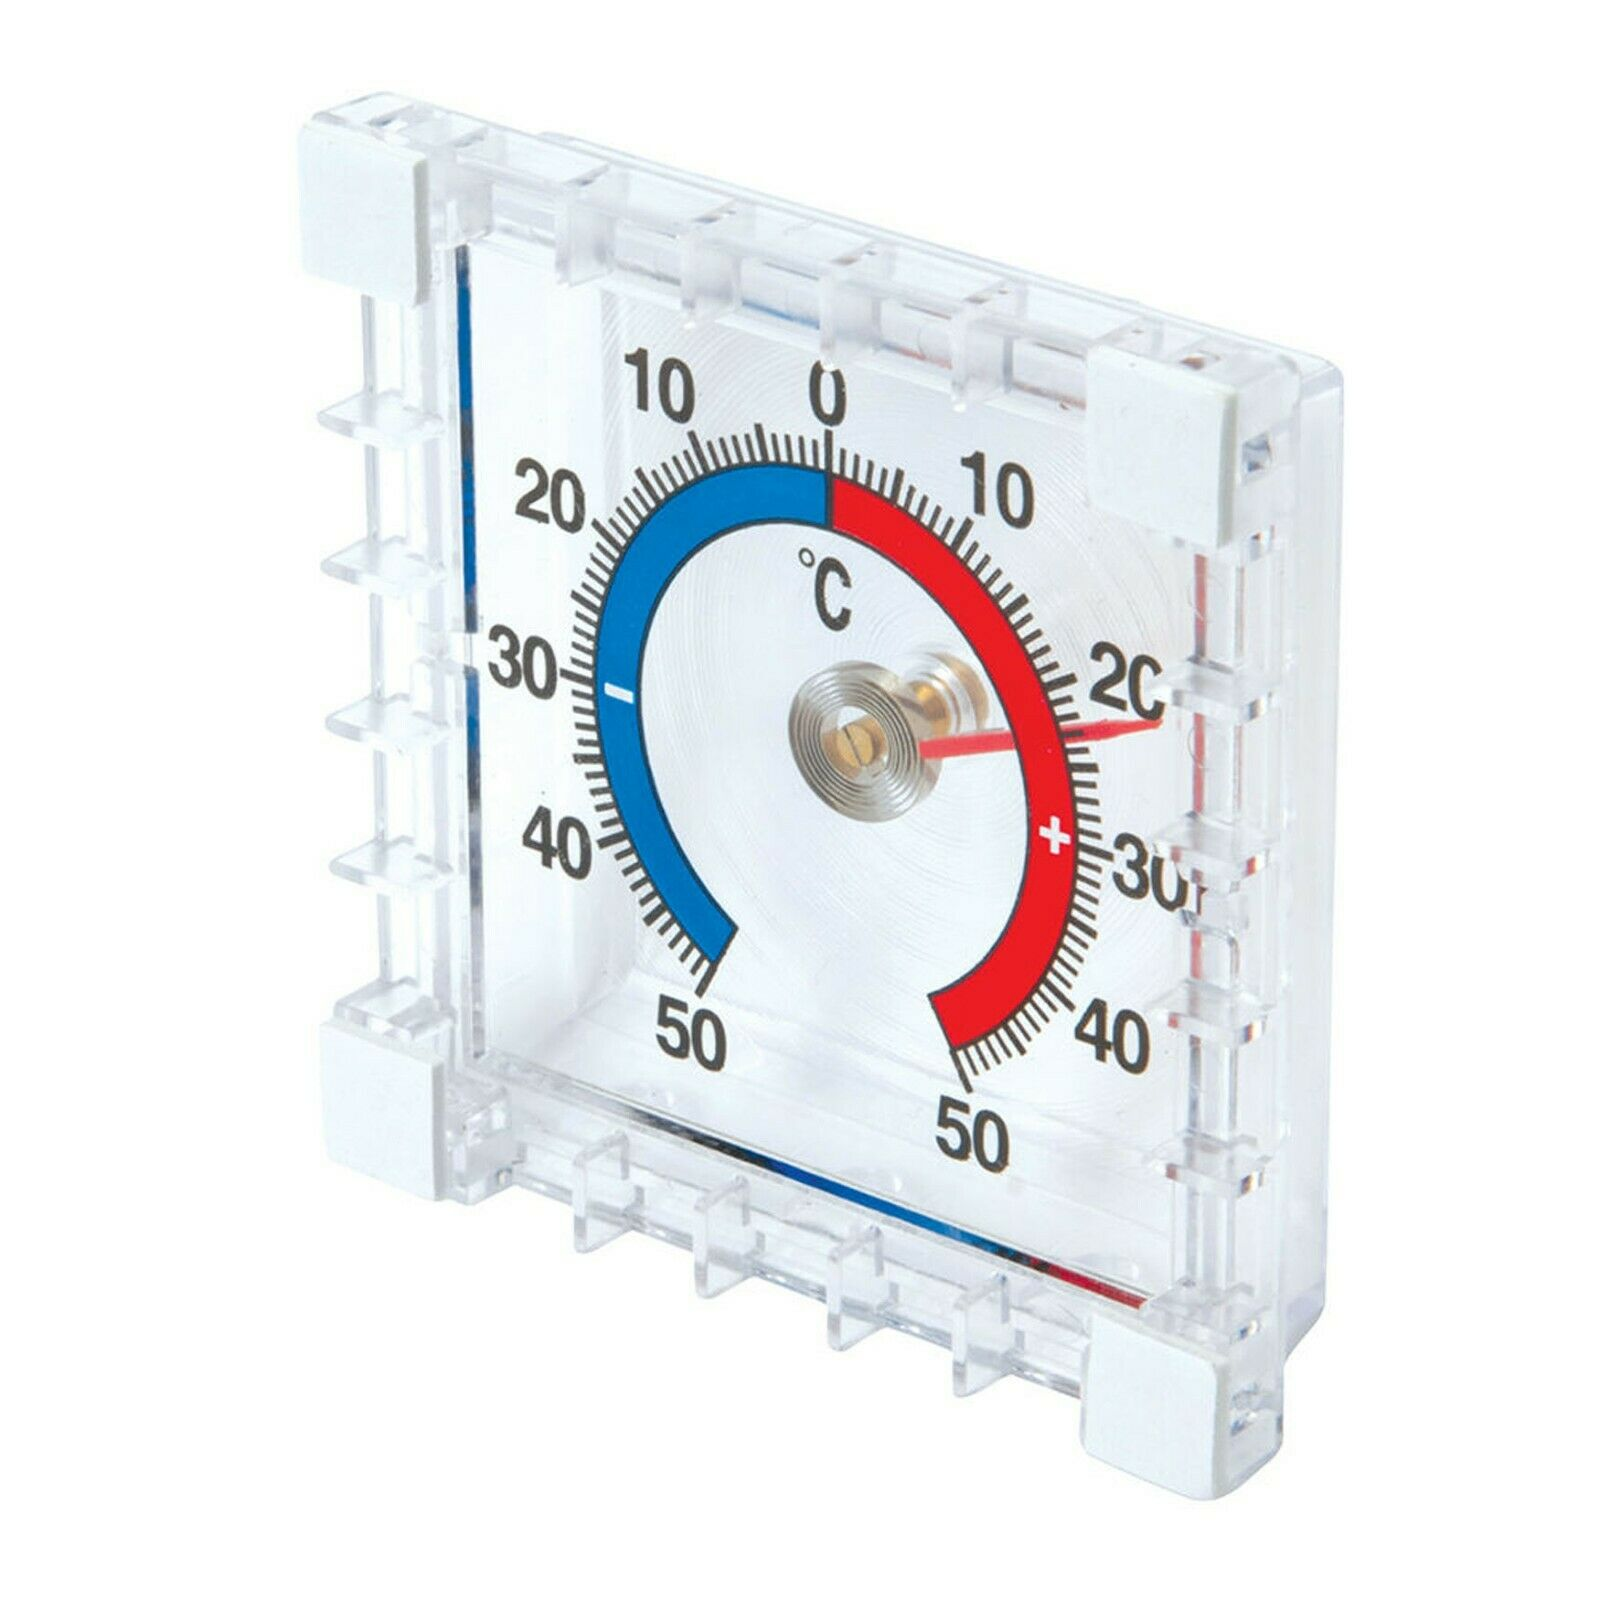 Square Window THERMOMETER HOME GARDEN KITCHEN EASY READ TEMPERATURE METER UK